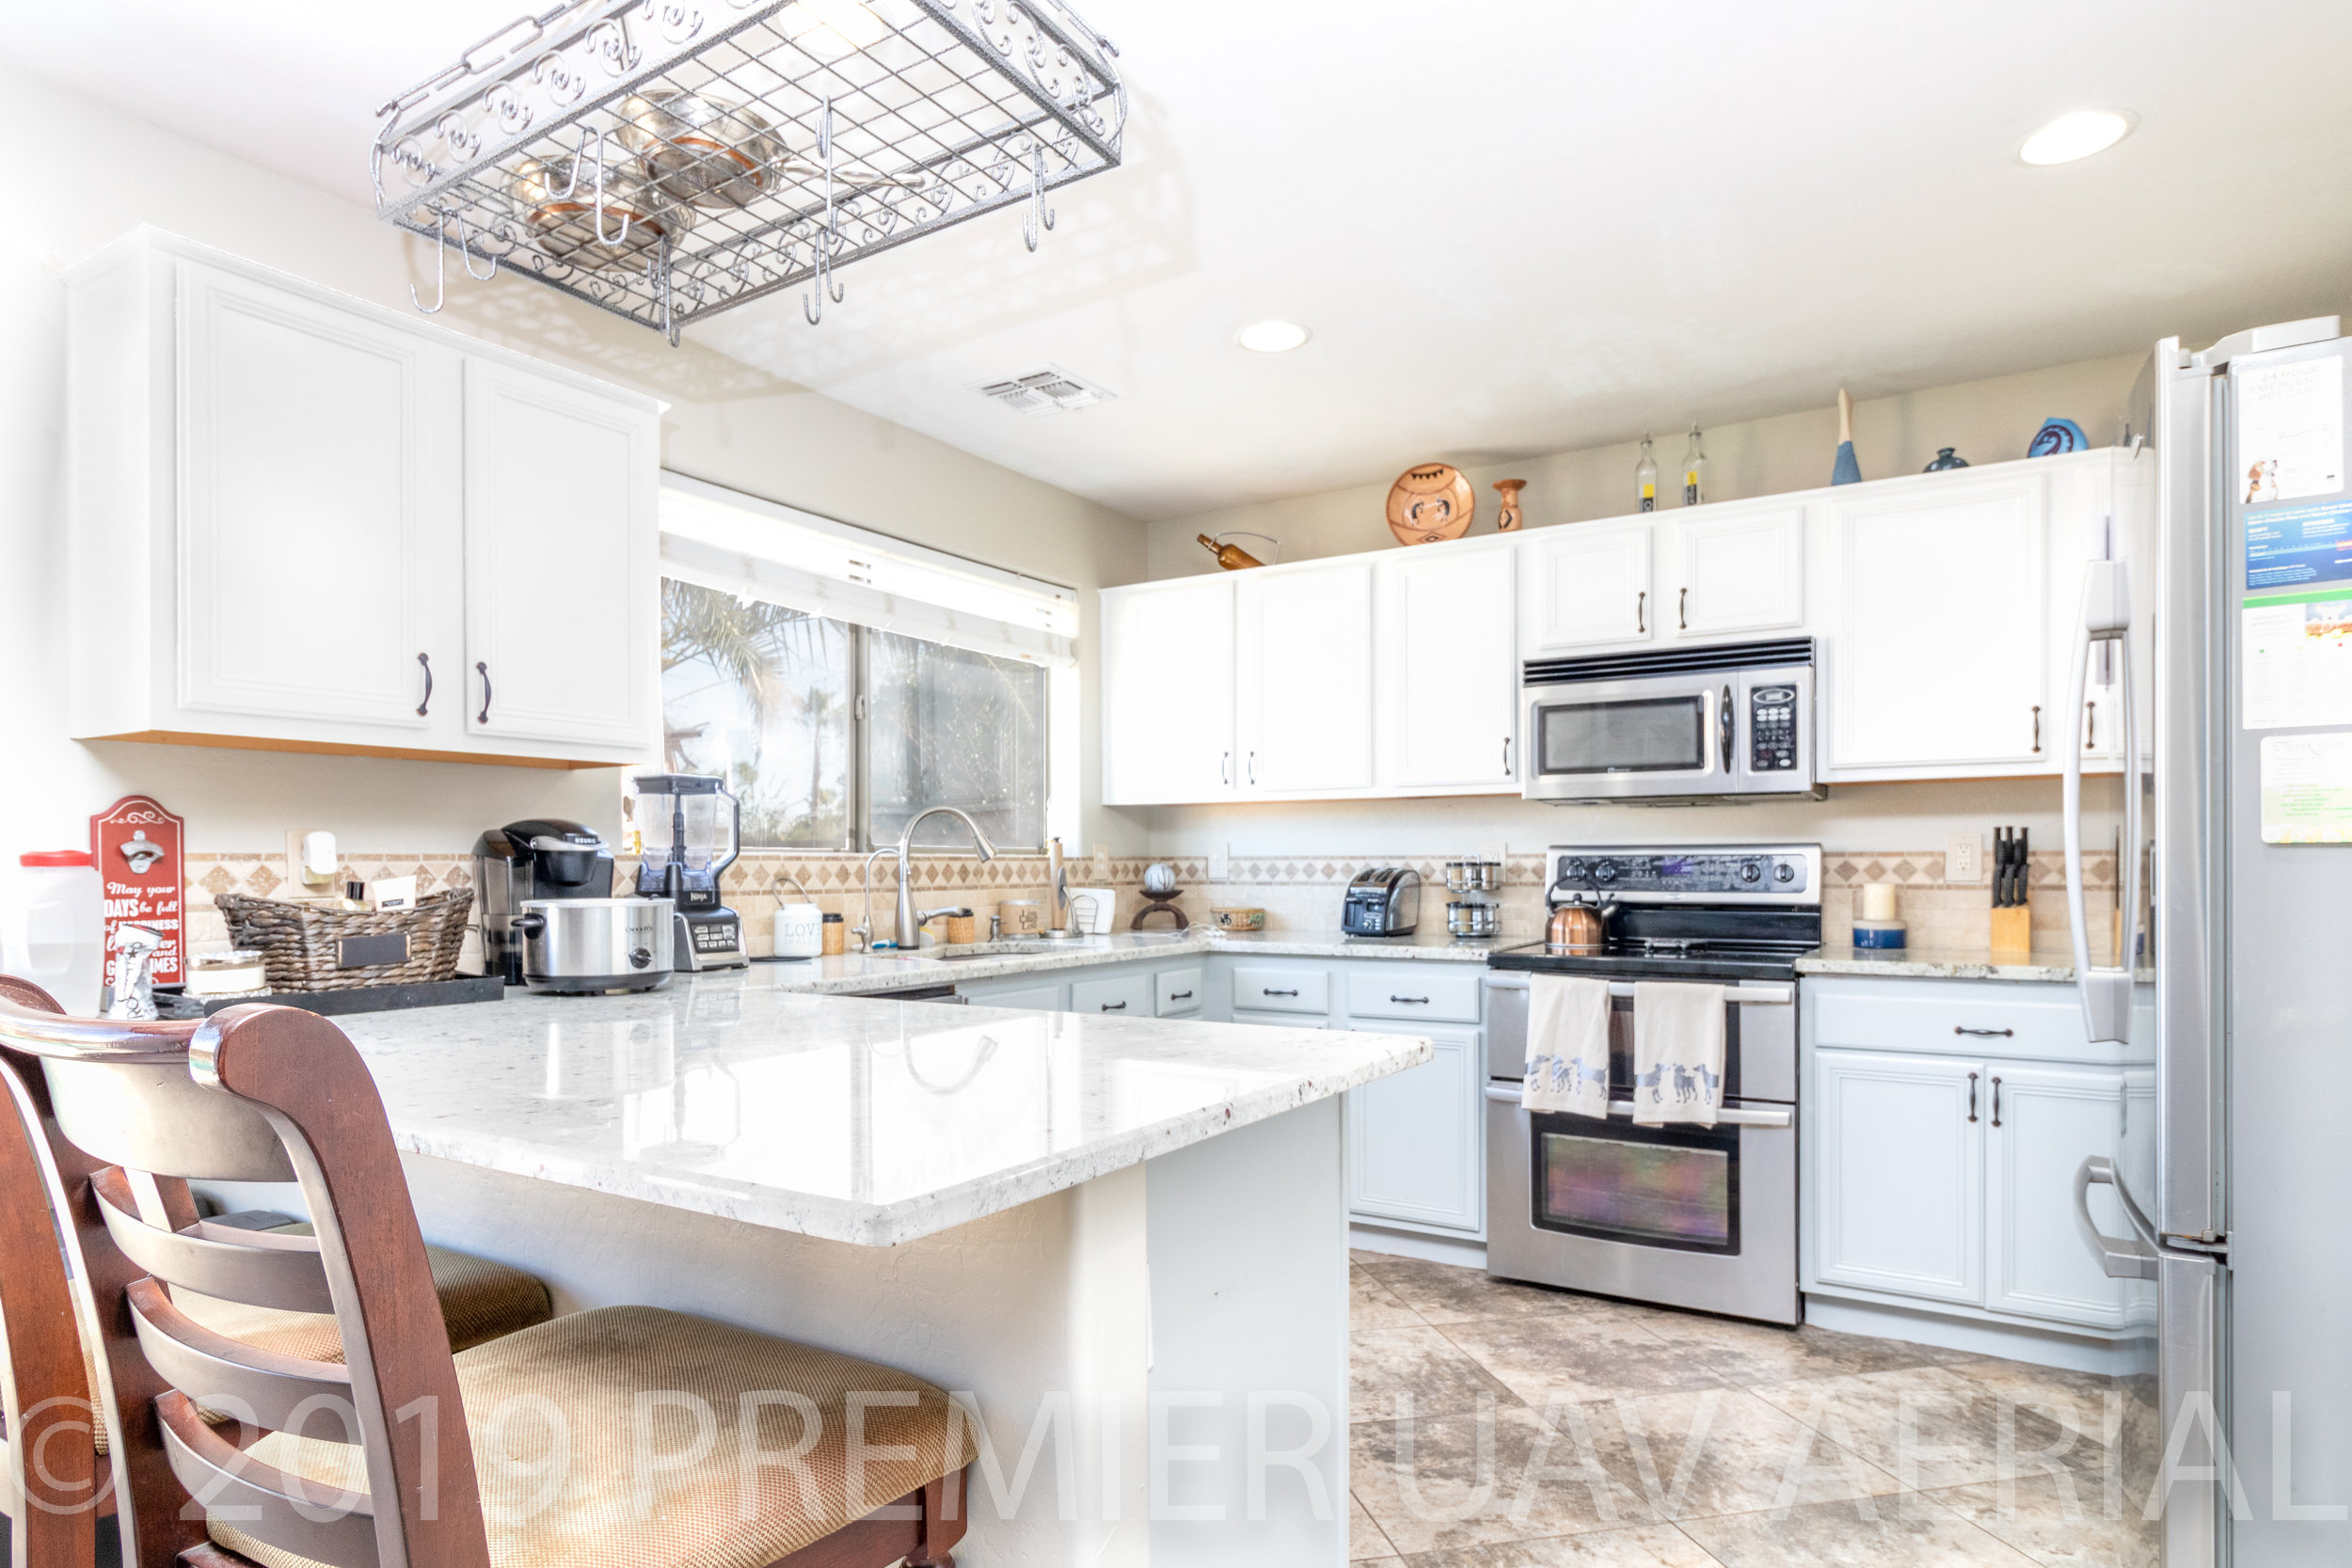 THE TOP REAL ESTATE PHOTOGRAPHY AND REAL ESTATE VIDEO SERVICE IN ARIZONA